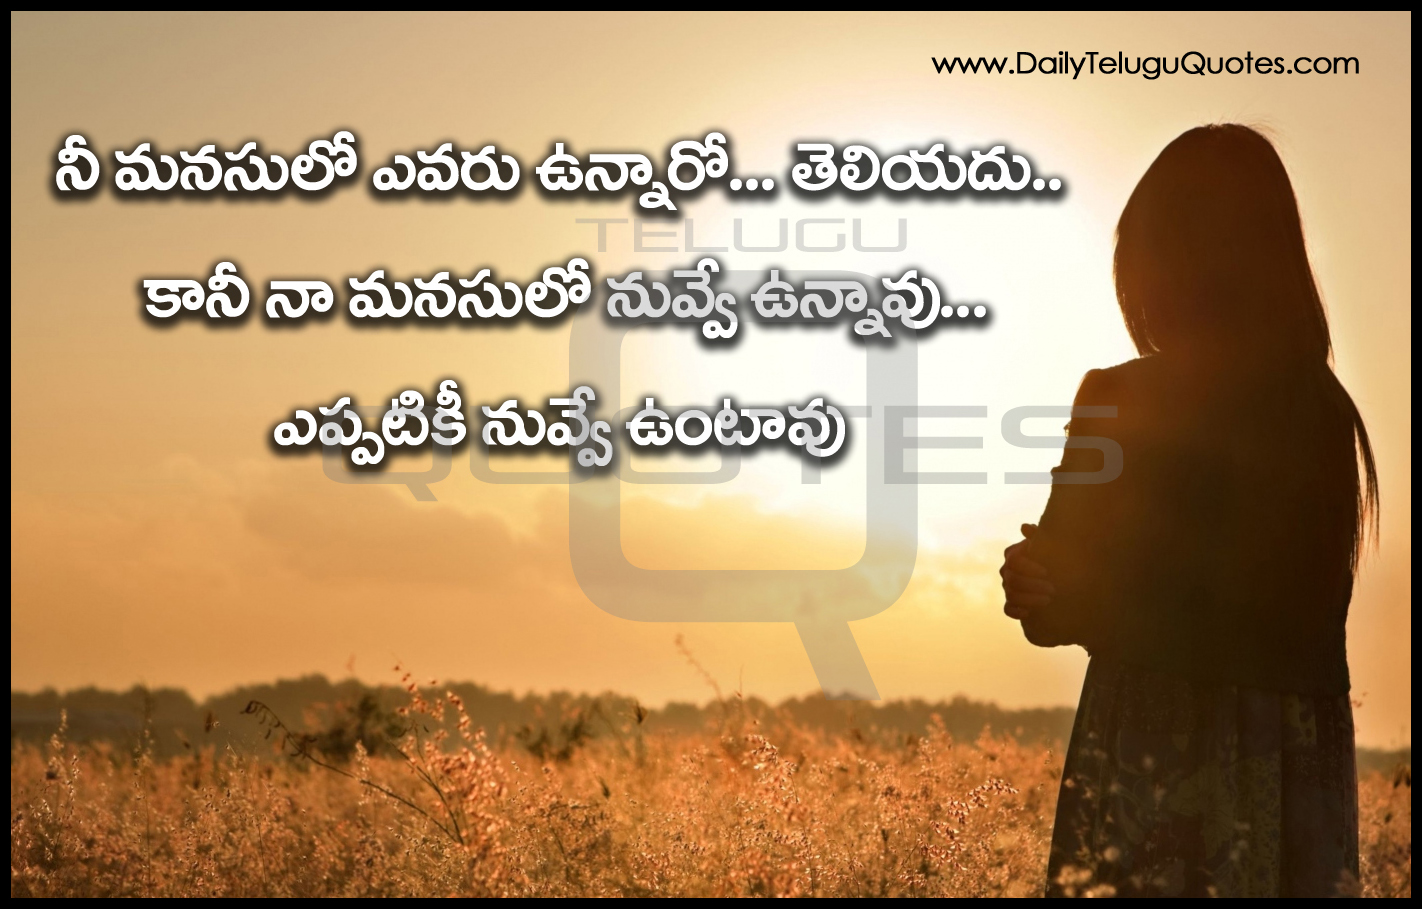 Love Quotes In Telugu Hd Wallpaprs And Love Feelings And Sayings